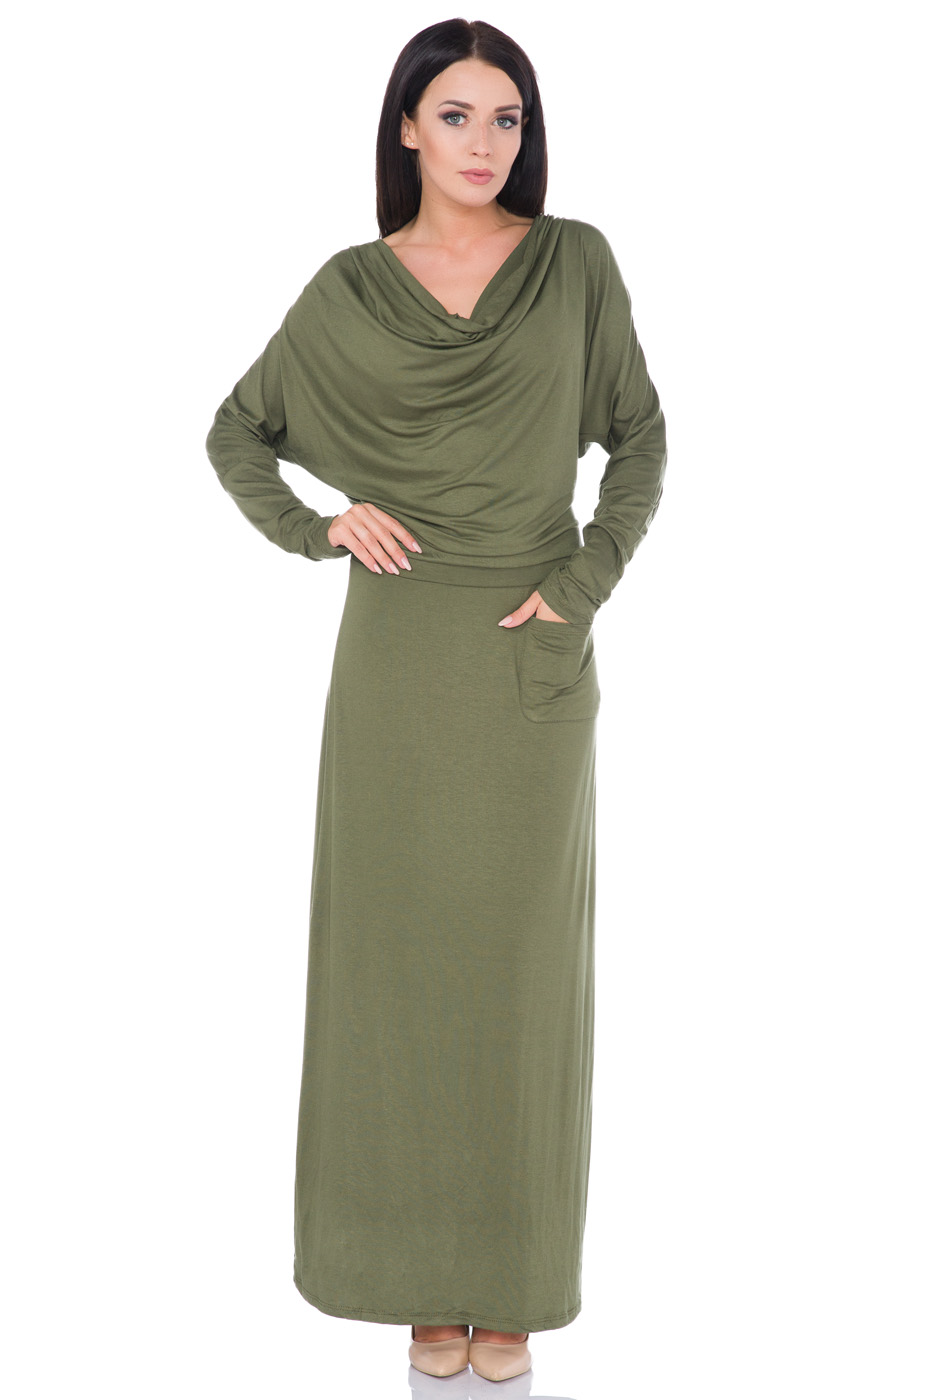 789eb7380456 Ladies Semi-Formal Casual Cowl Neck Batwing Long Sleeve Ankle Length ...